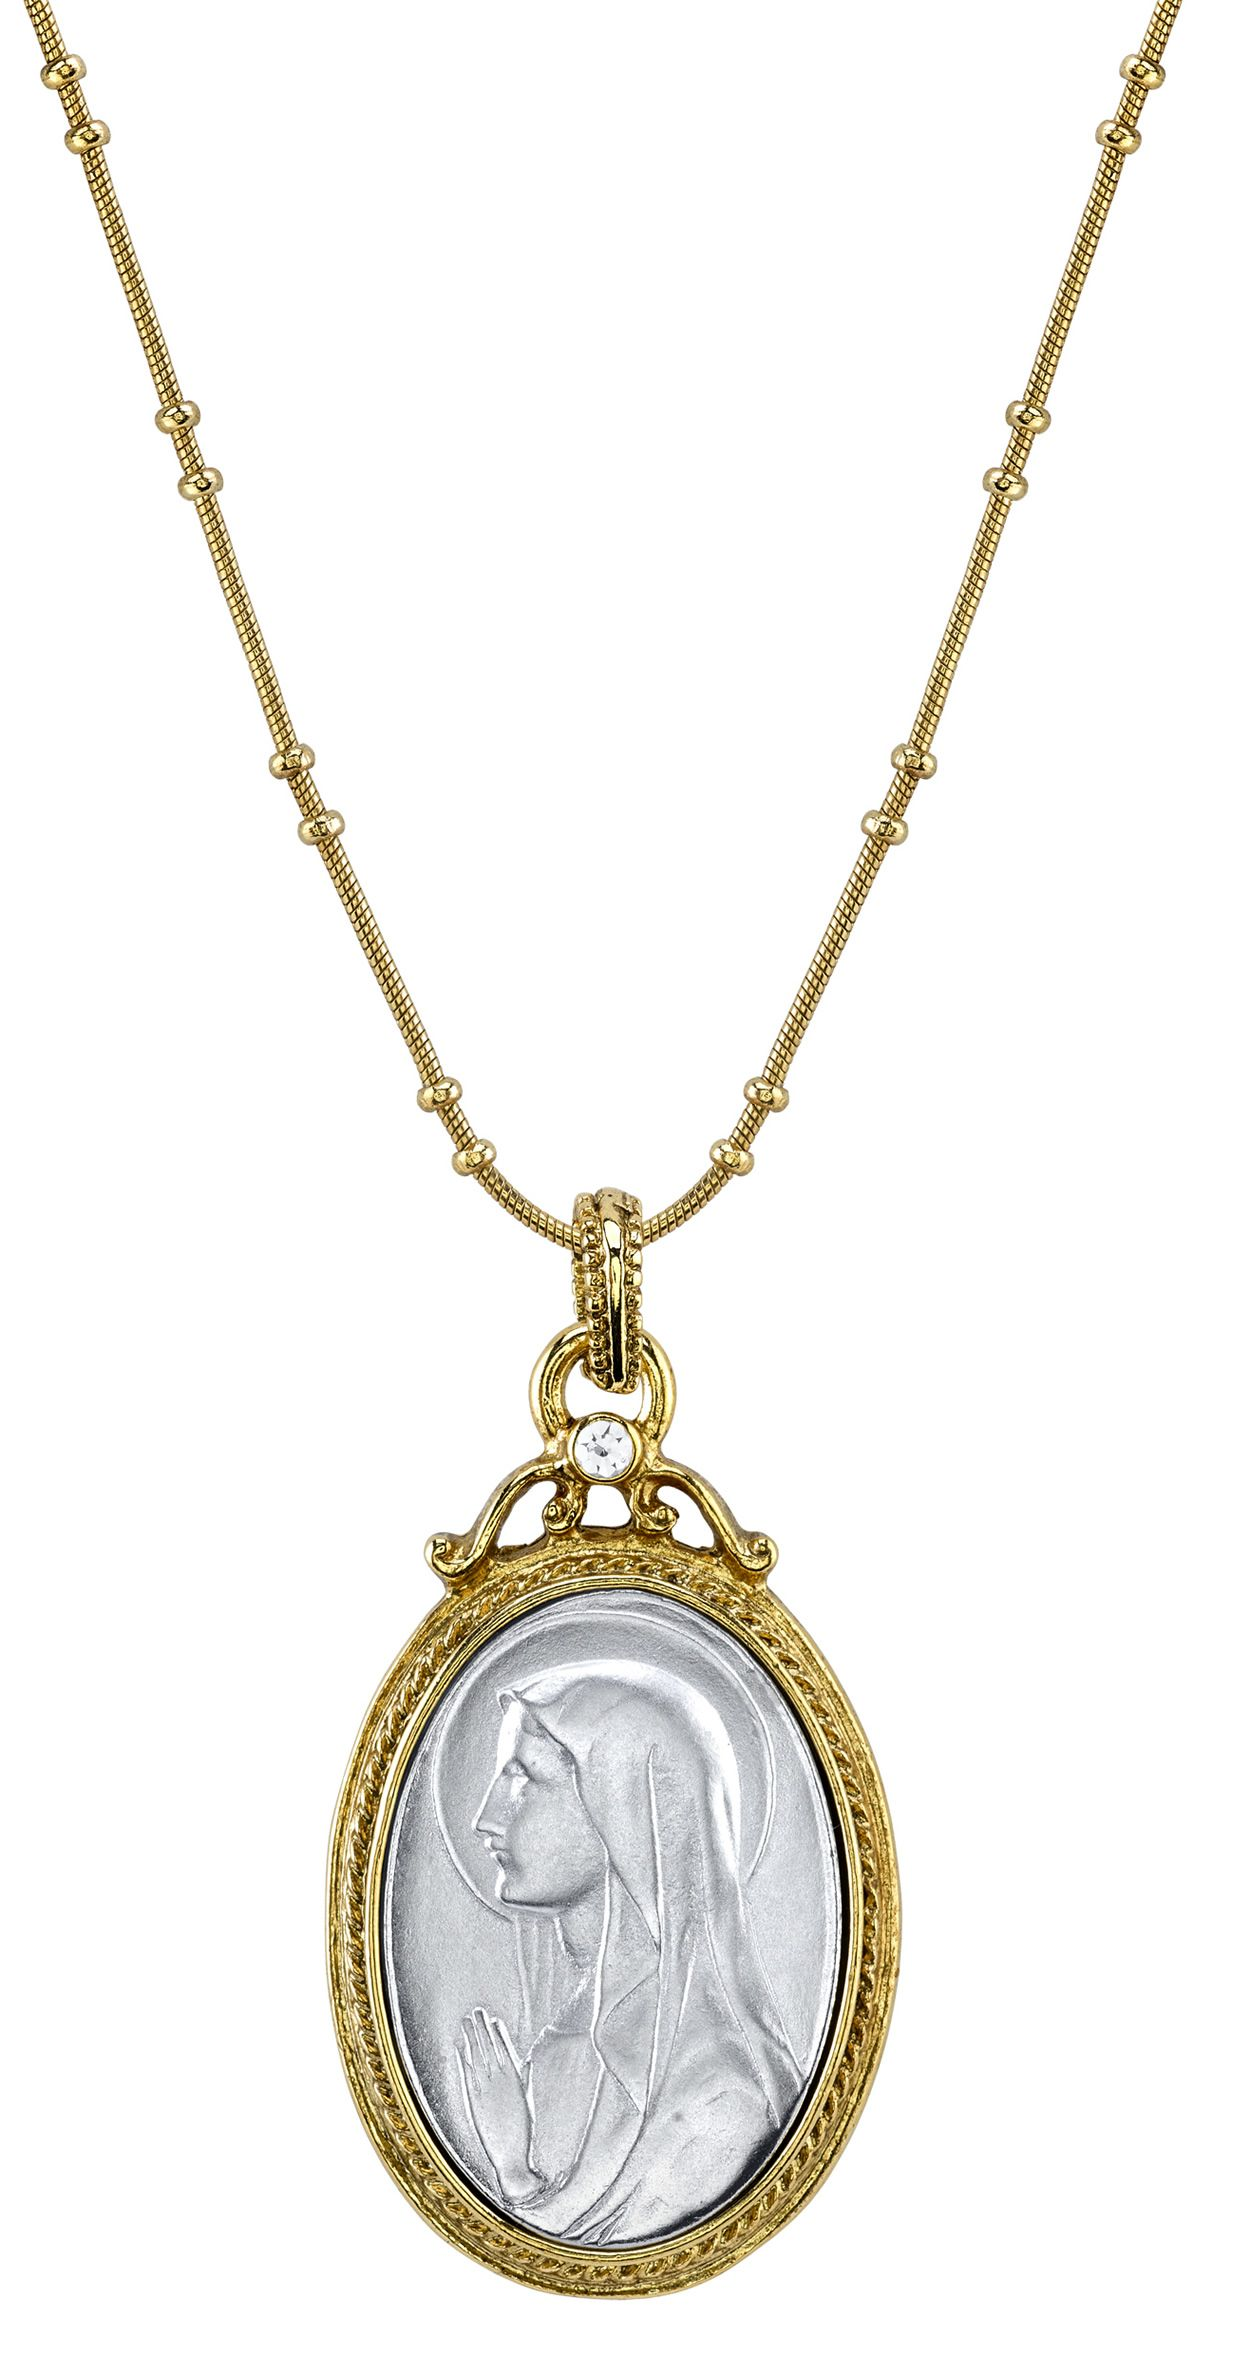 Virgin mary necklaces and virgin mary medals from the vatican virgin mary pendant necklace aloadofball Choice Image